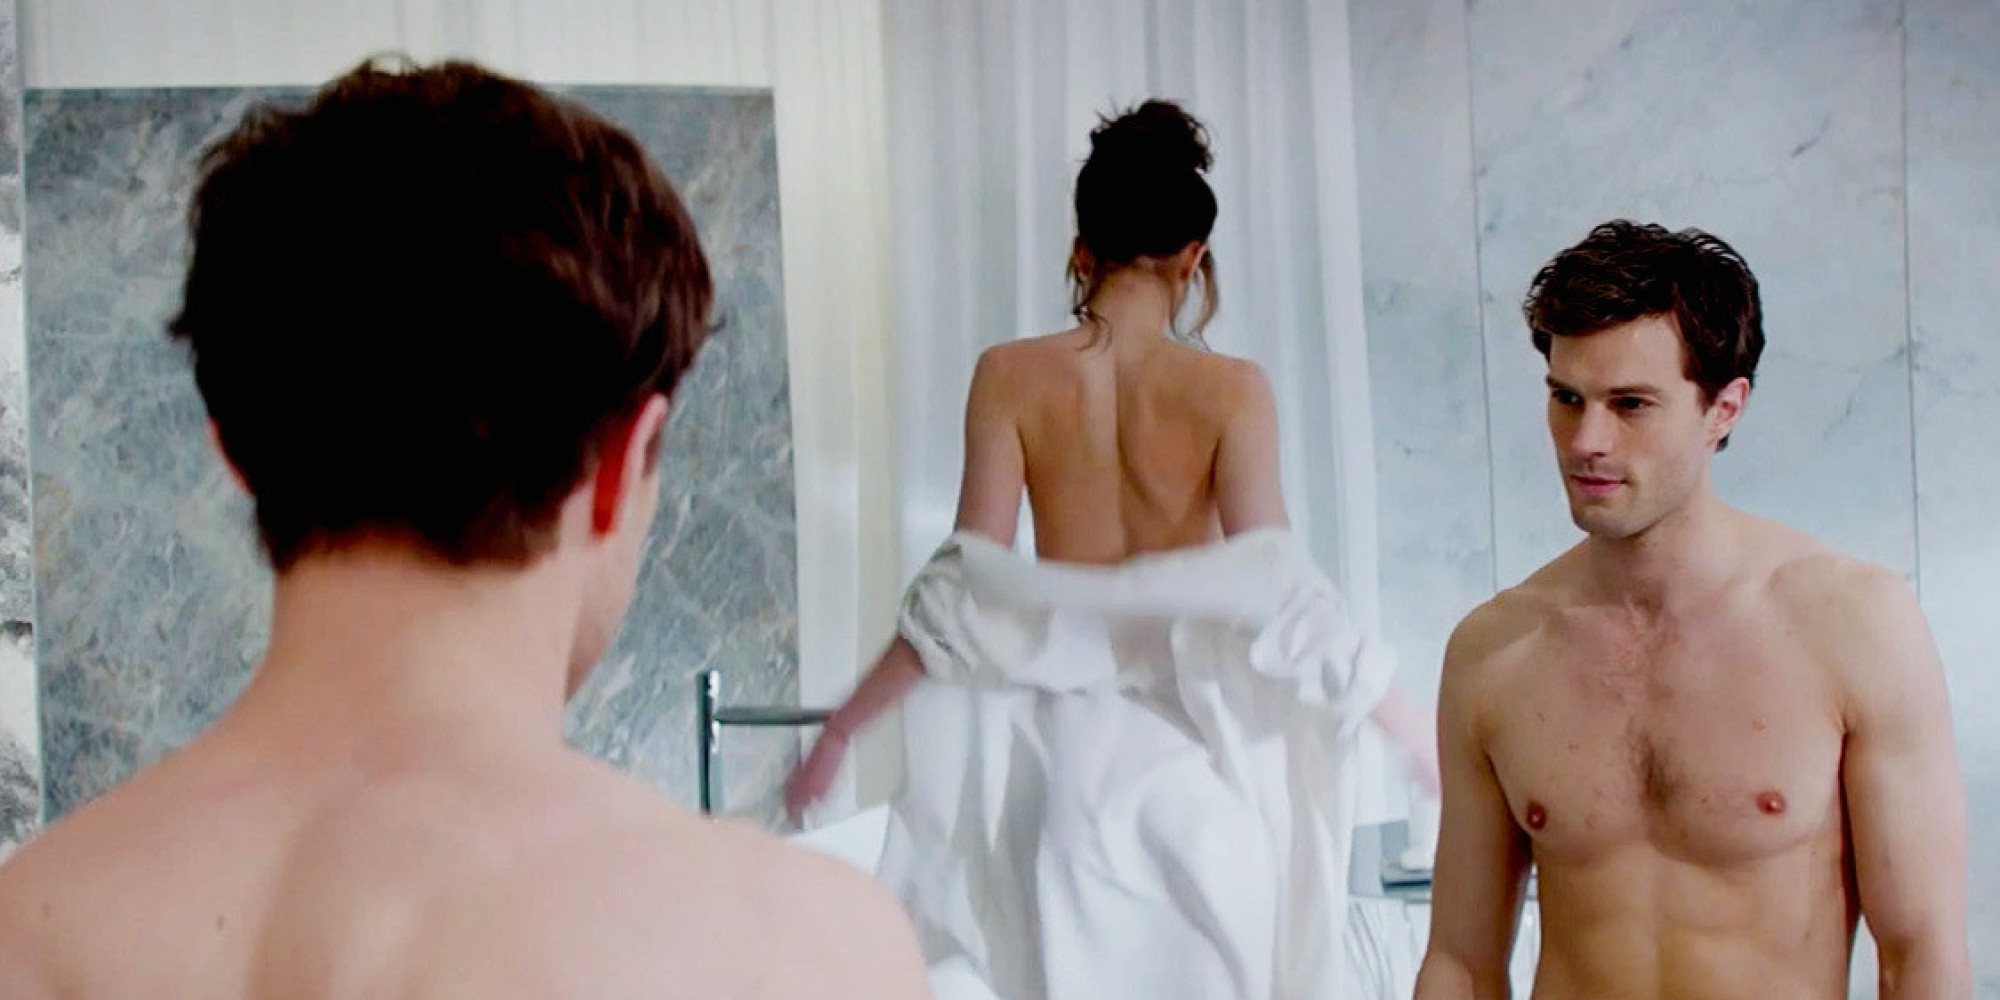 mississippi wants to see fifty shades of grey more than everyone mississippi wants to see fifty shades of grey more than everyone the huffington post